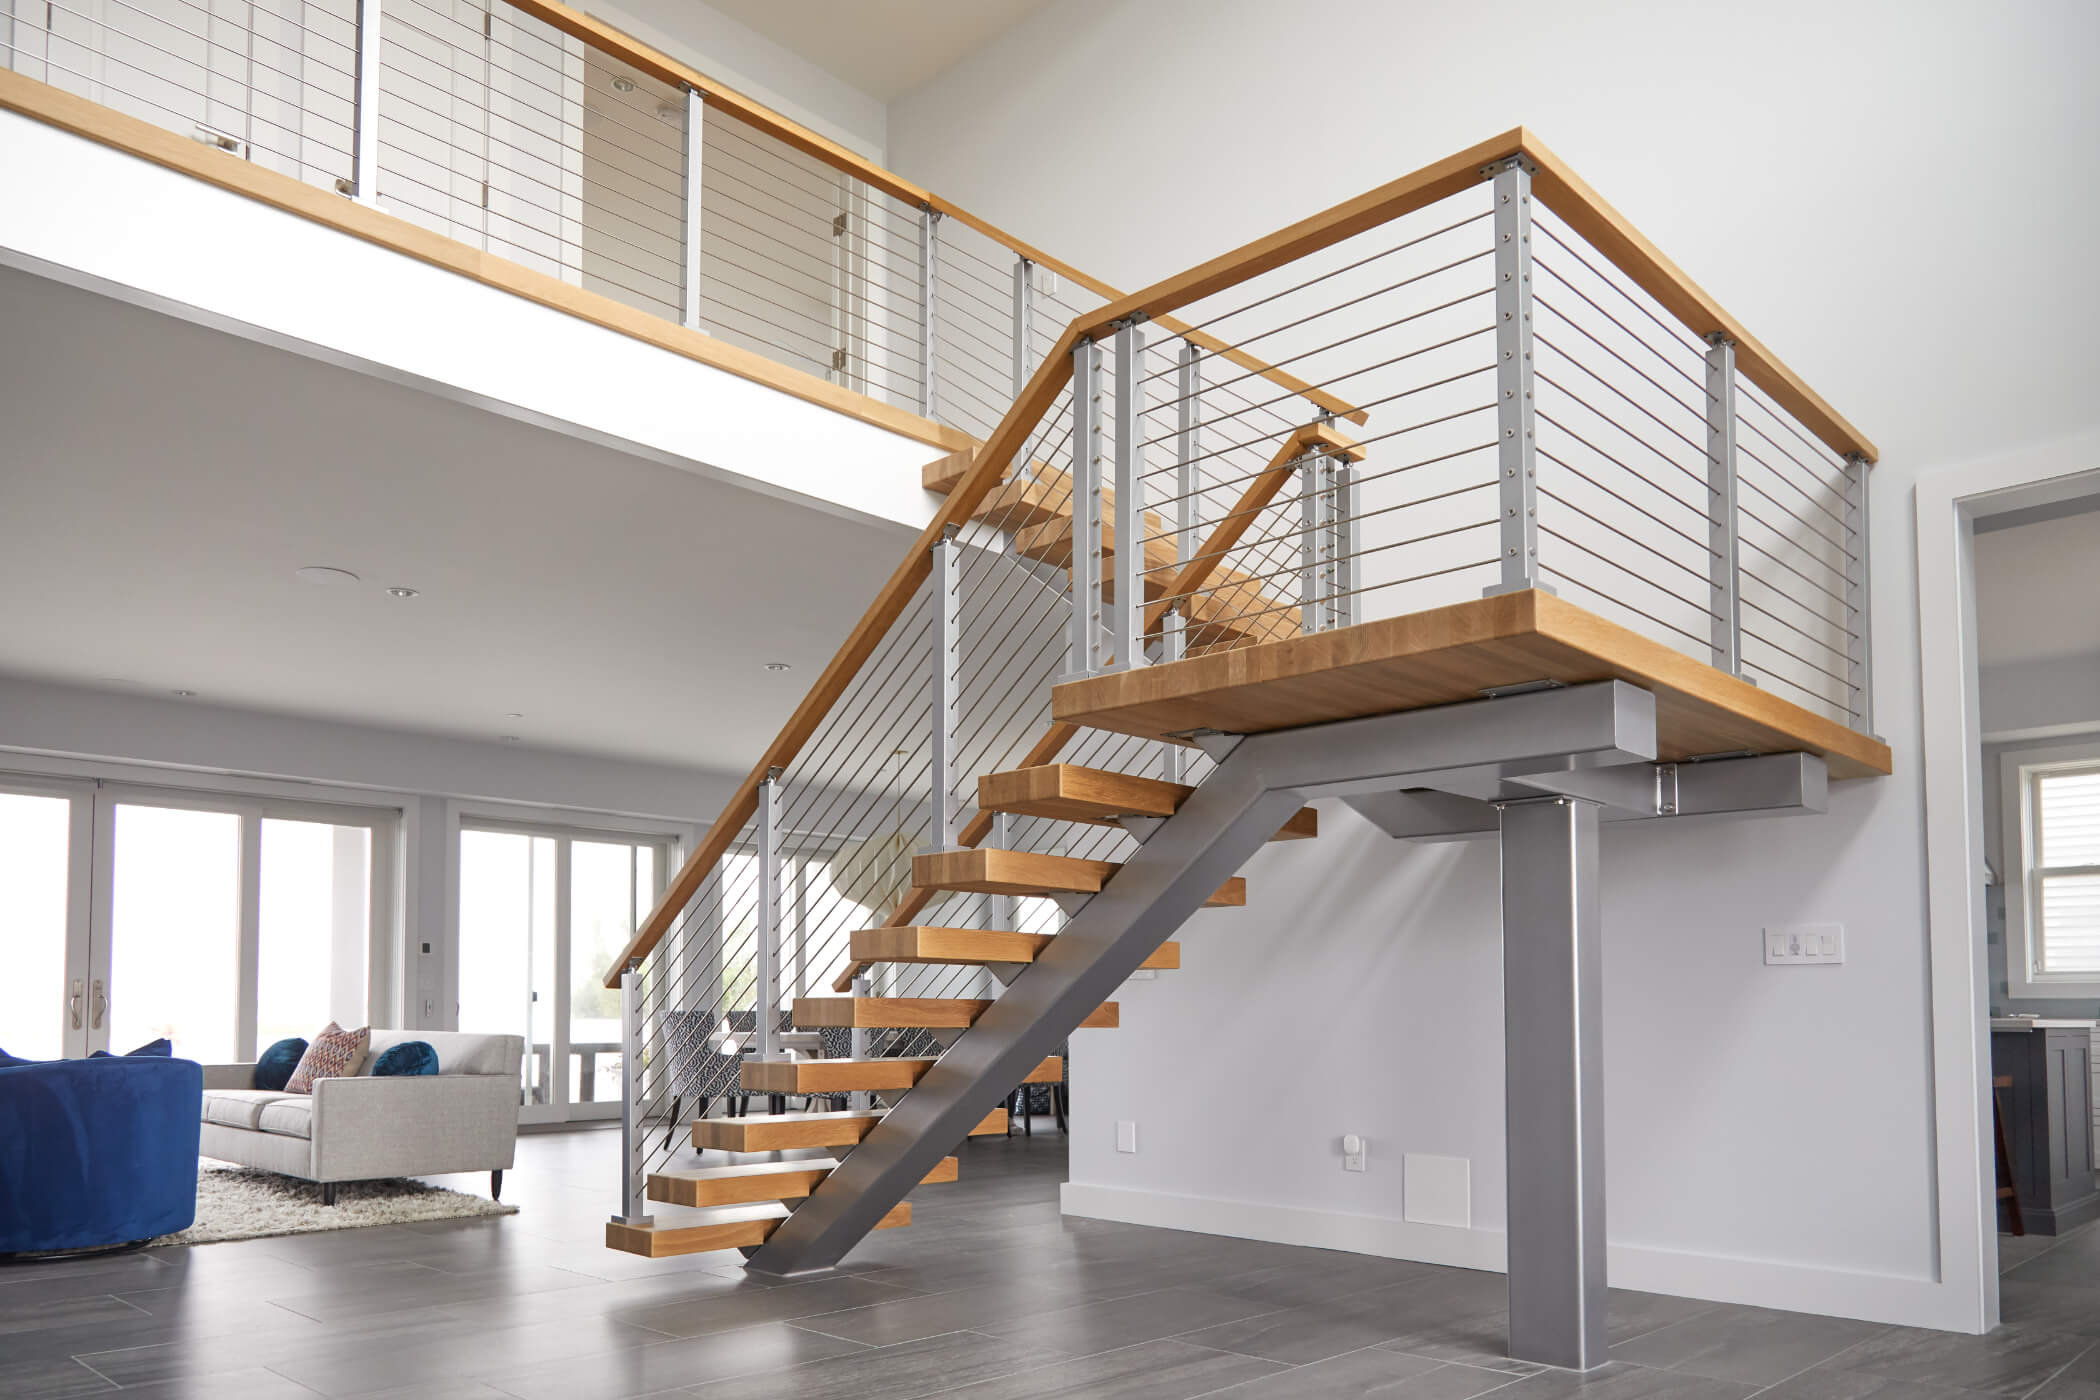 Floating stair treads with wooden handrail